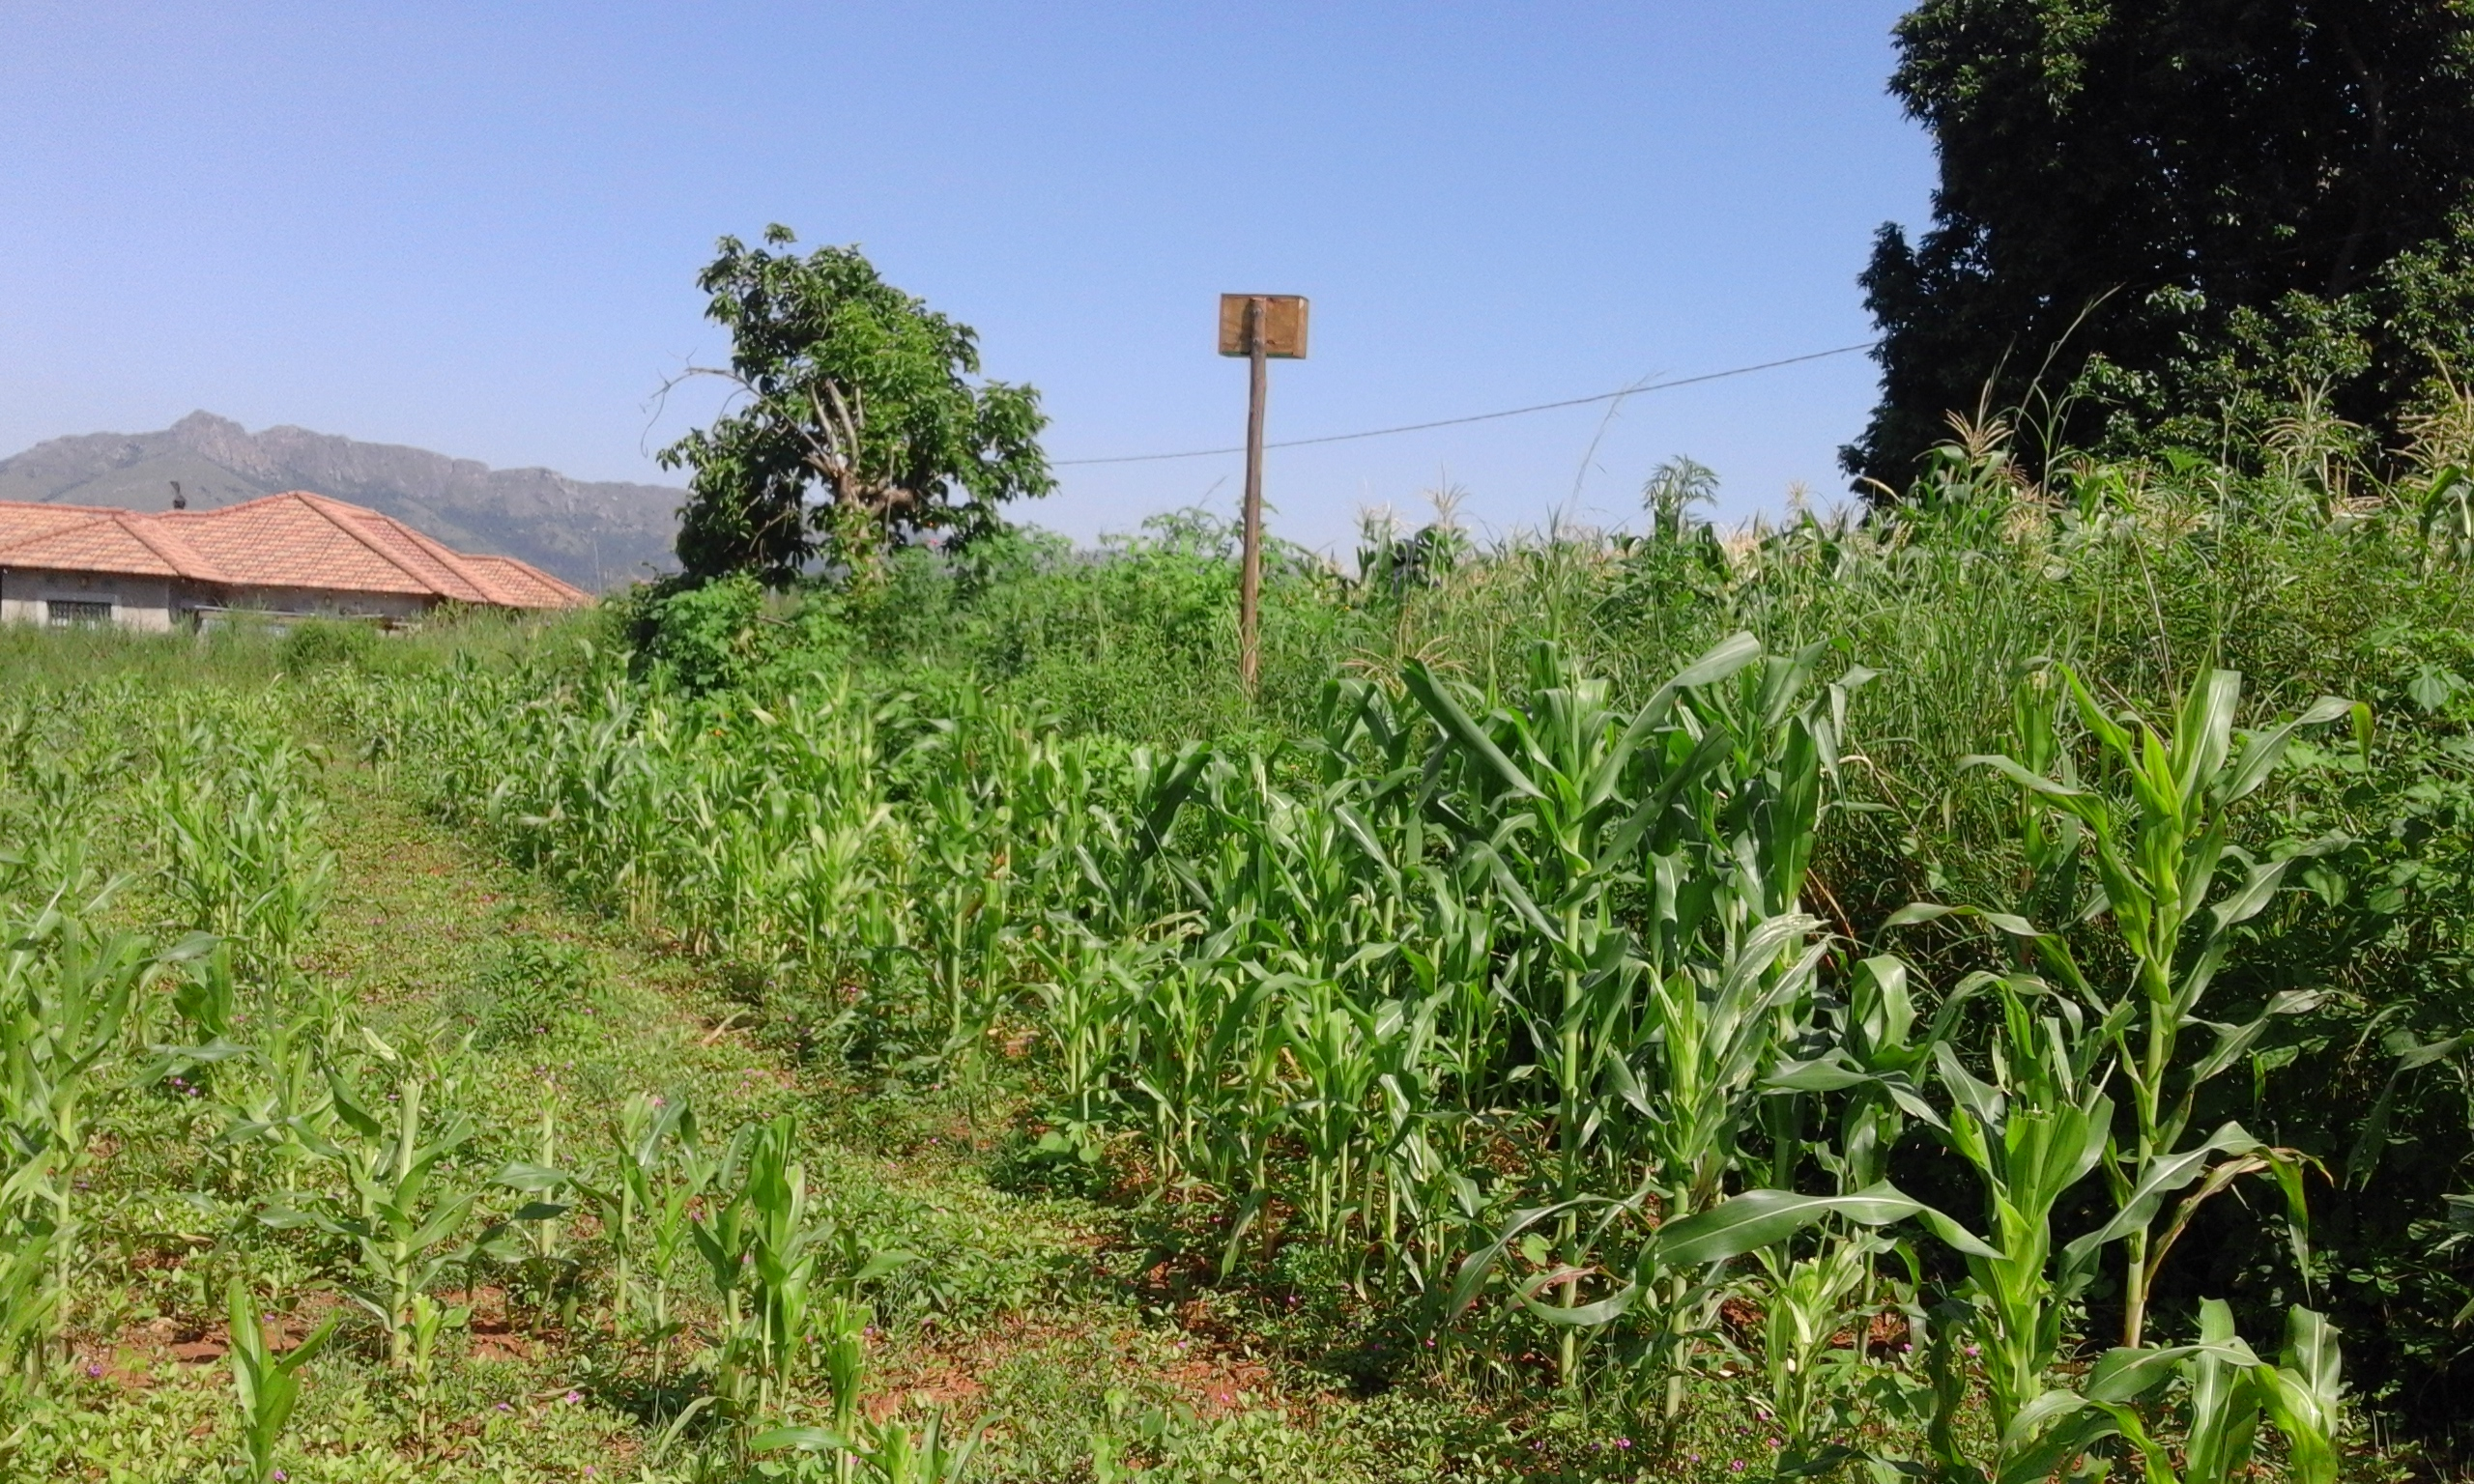 Maize field with owl box